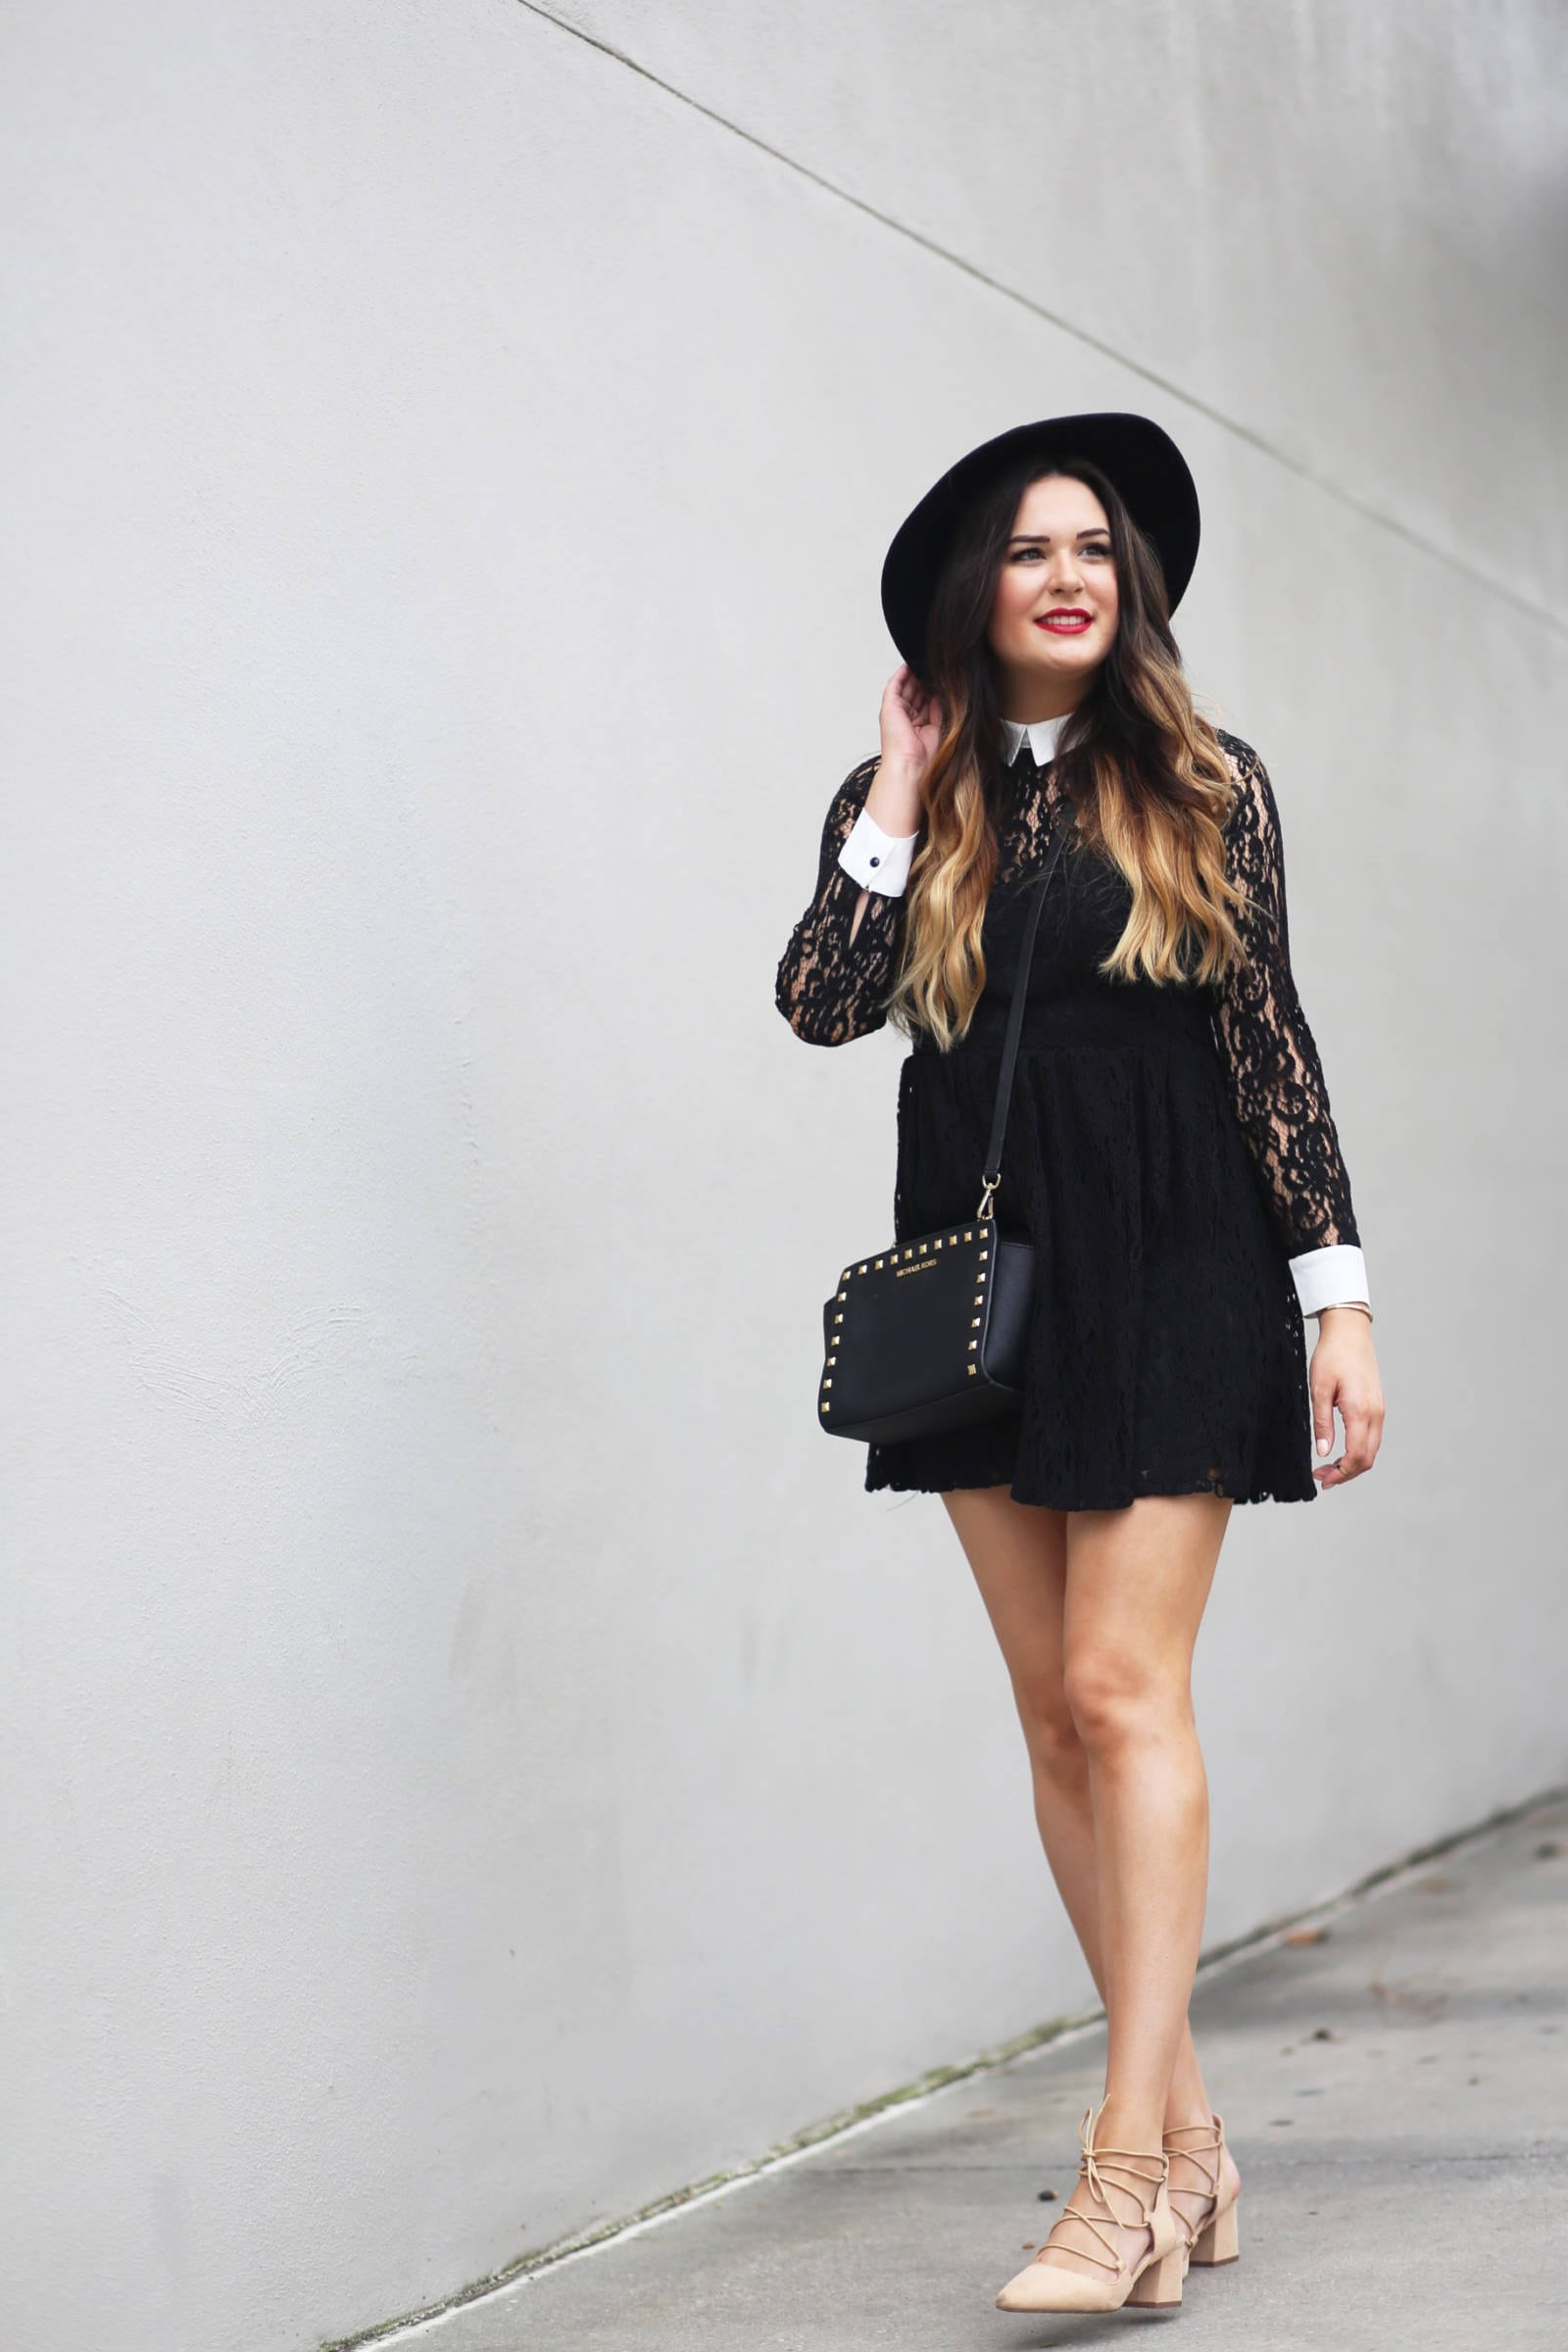 Fashion blogger Mash Elle styes a dressy date outfit complete with a Forever 21 black lace dress, Forever 21 pink blush lace up shoes, Michael Kors stud purse, Forever 21 black wide rim hat and Daniel Wellington rose gold bracelet.